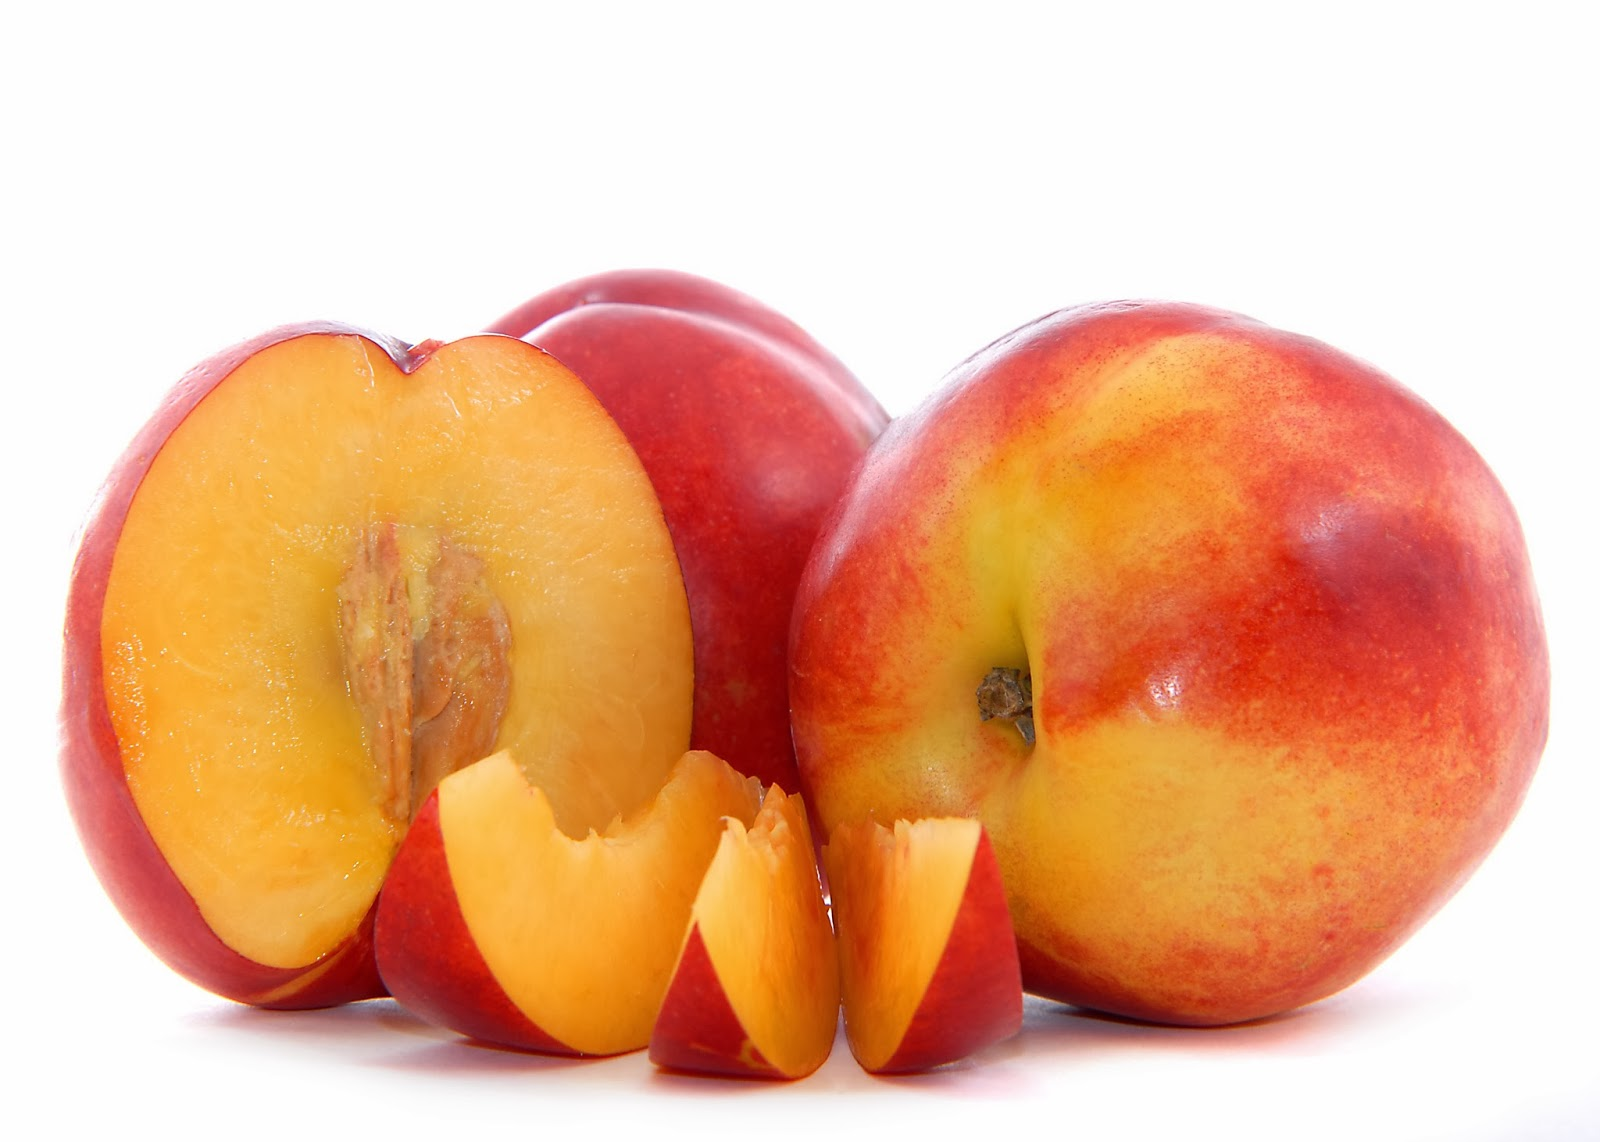 Peach health benefits and aesthetic